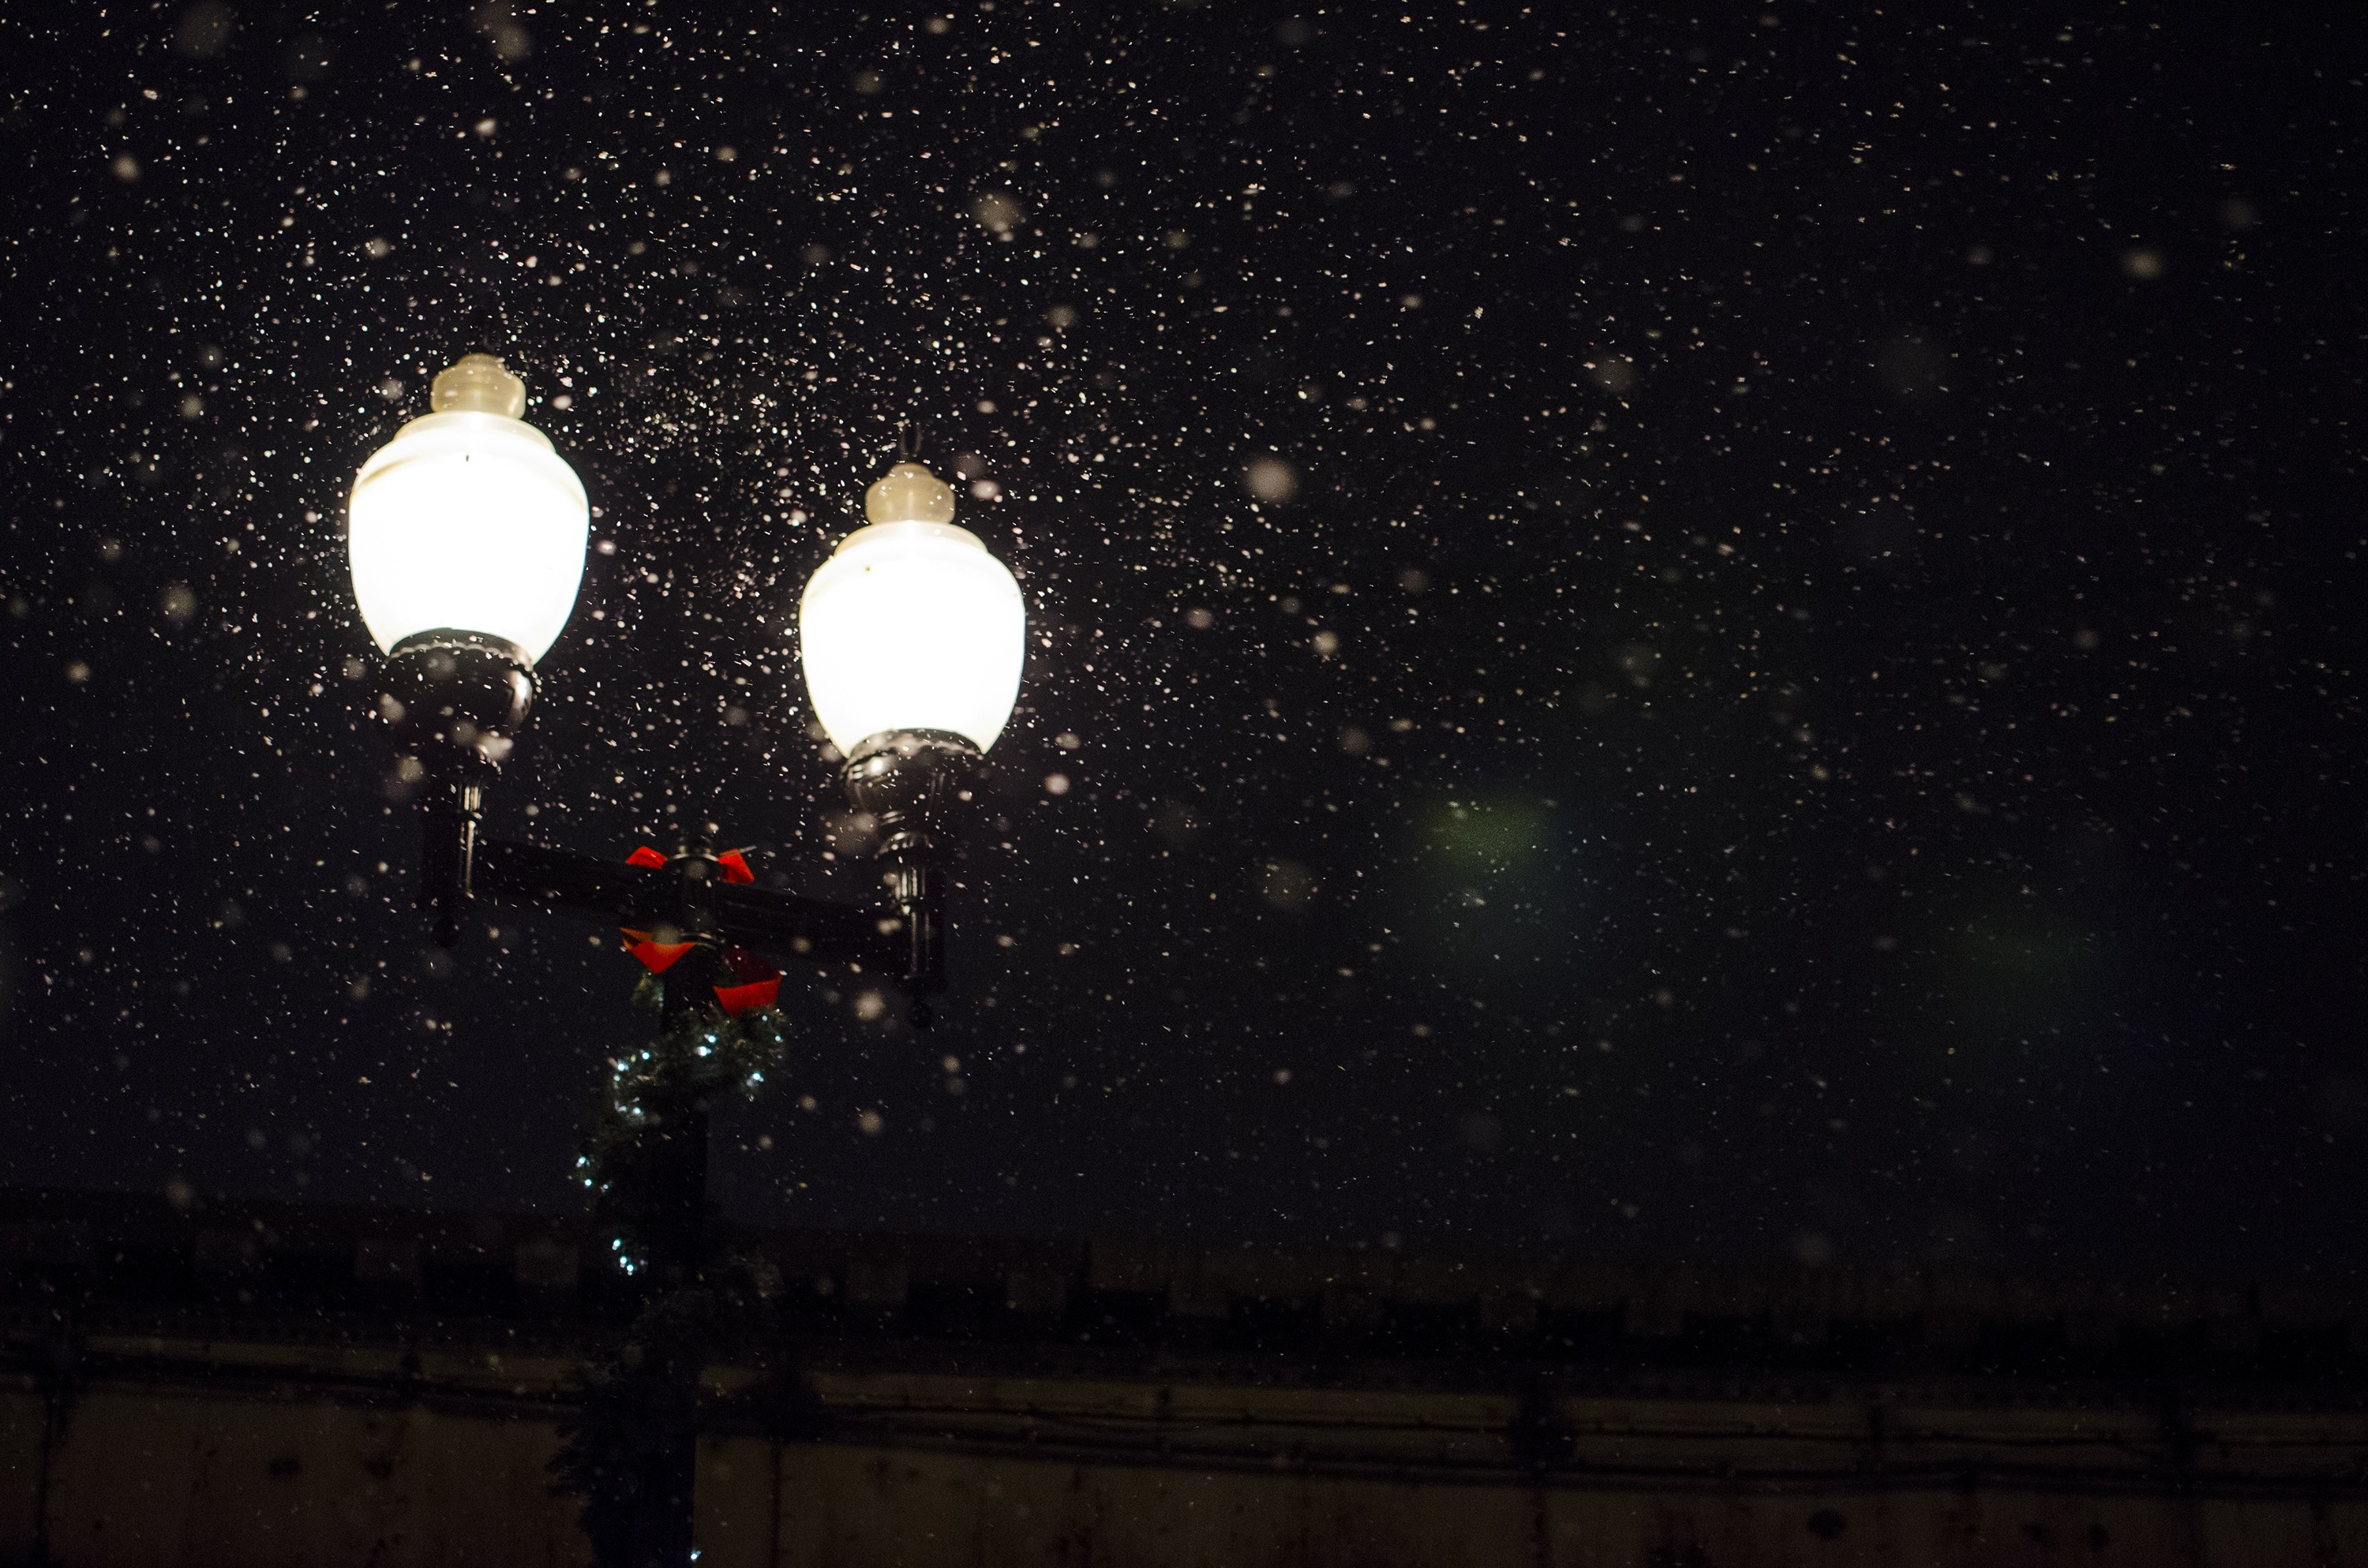 Lamp, City, Fall, Ice, Light, HQ Photo